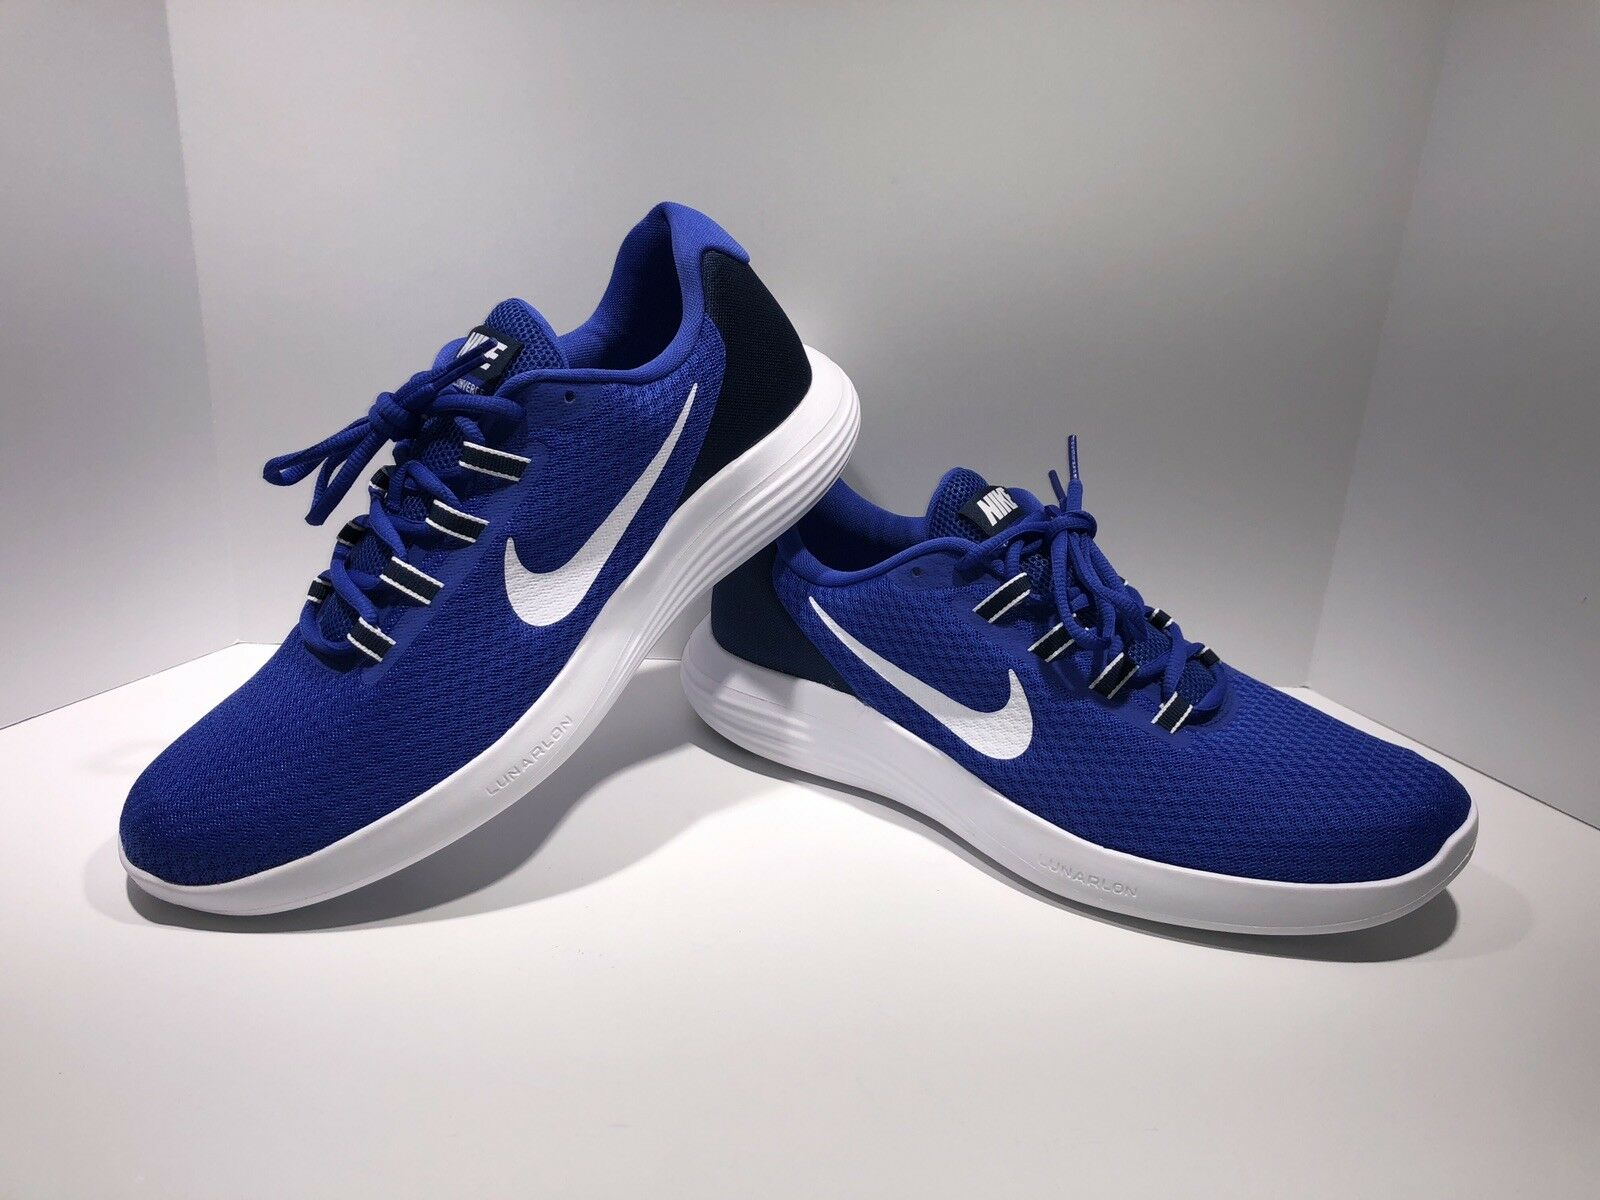 NIKE MEN'S SIZE 12 LUNARCONVERGE RUNNING SHOES SNEAKERS blueE 852462 400 NEW